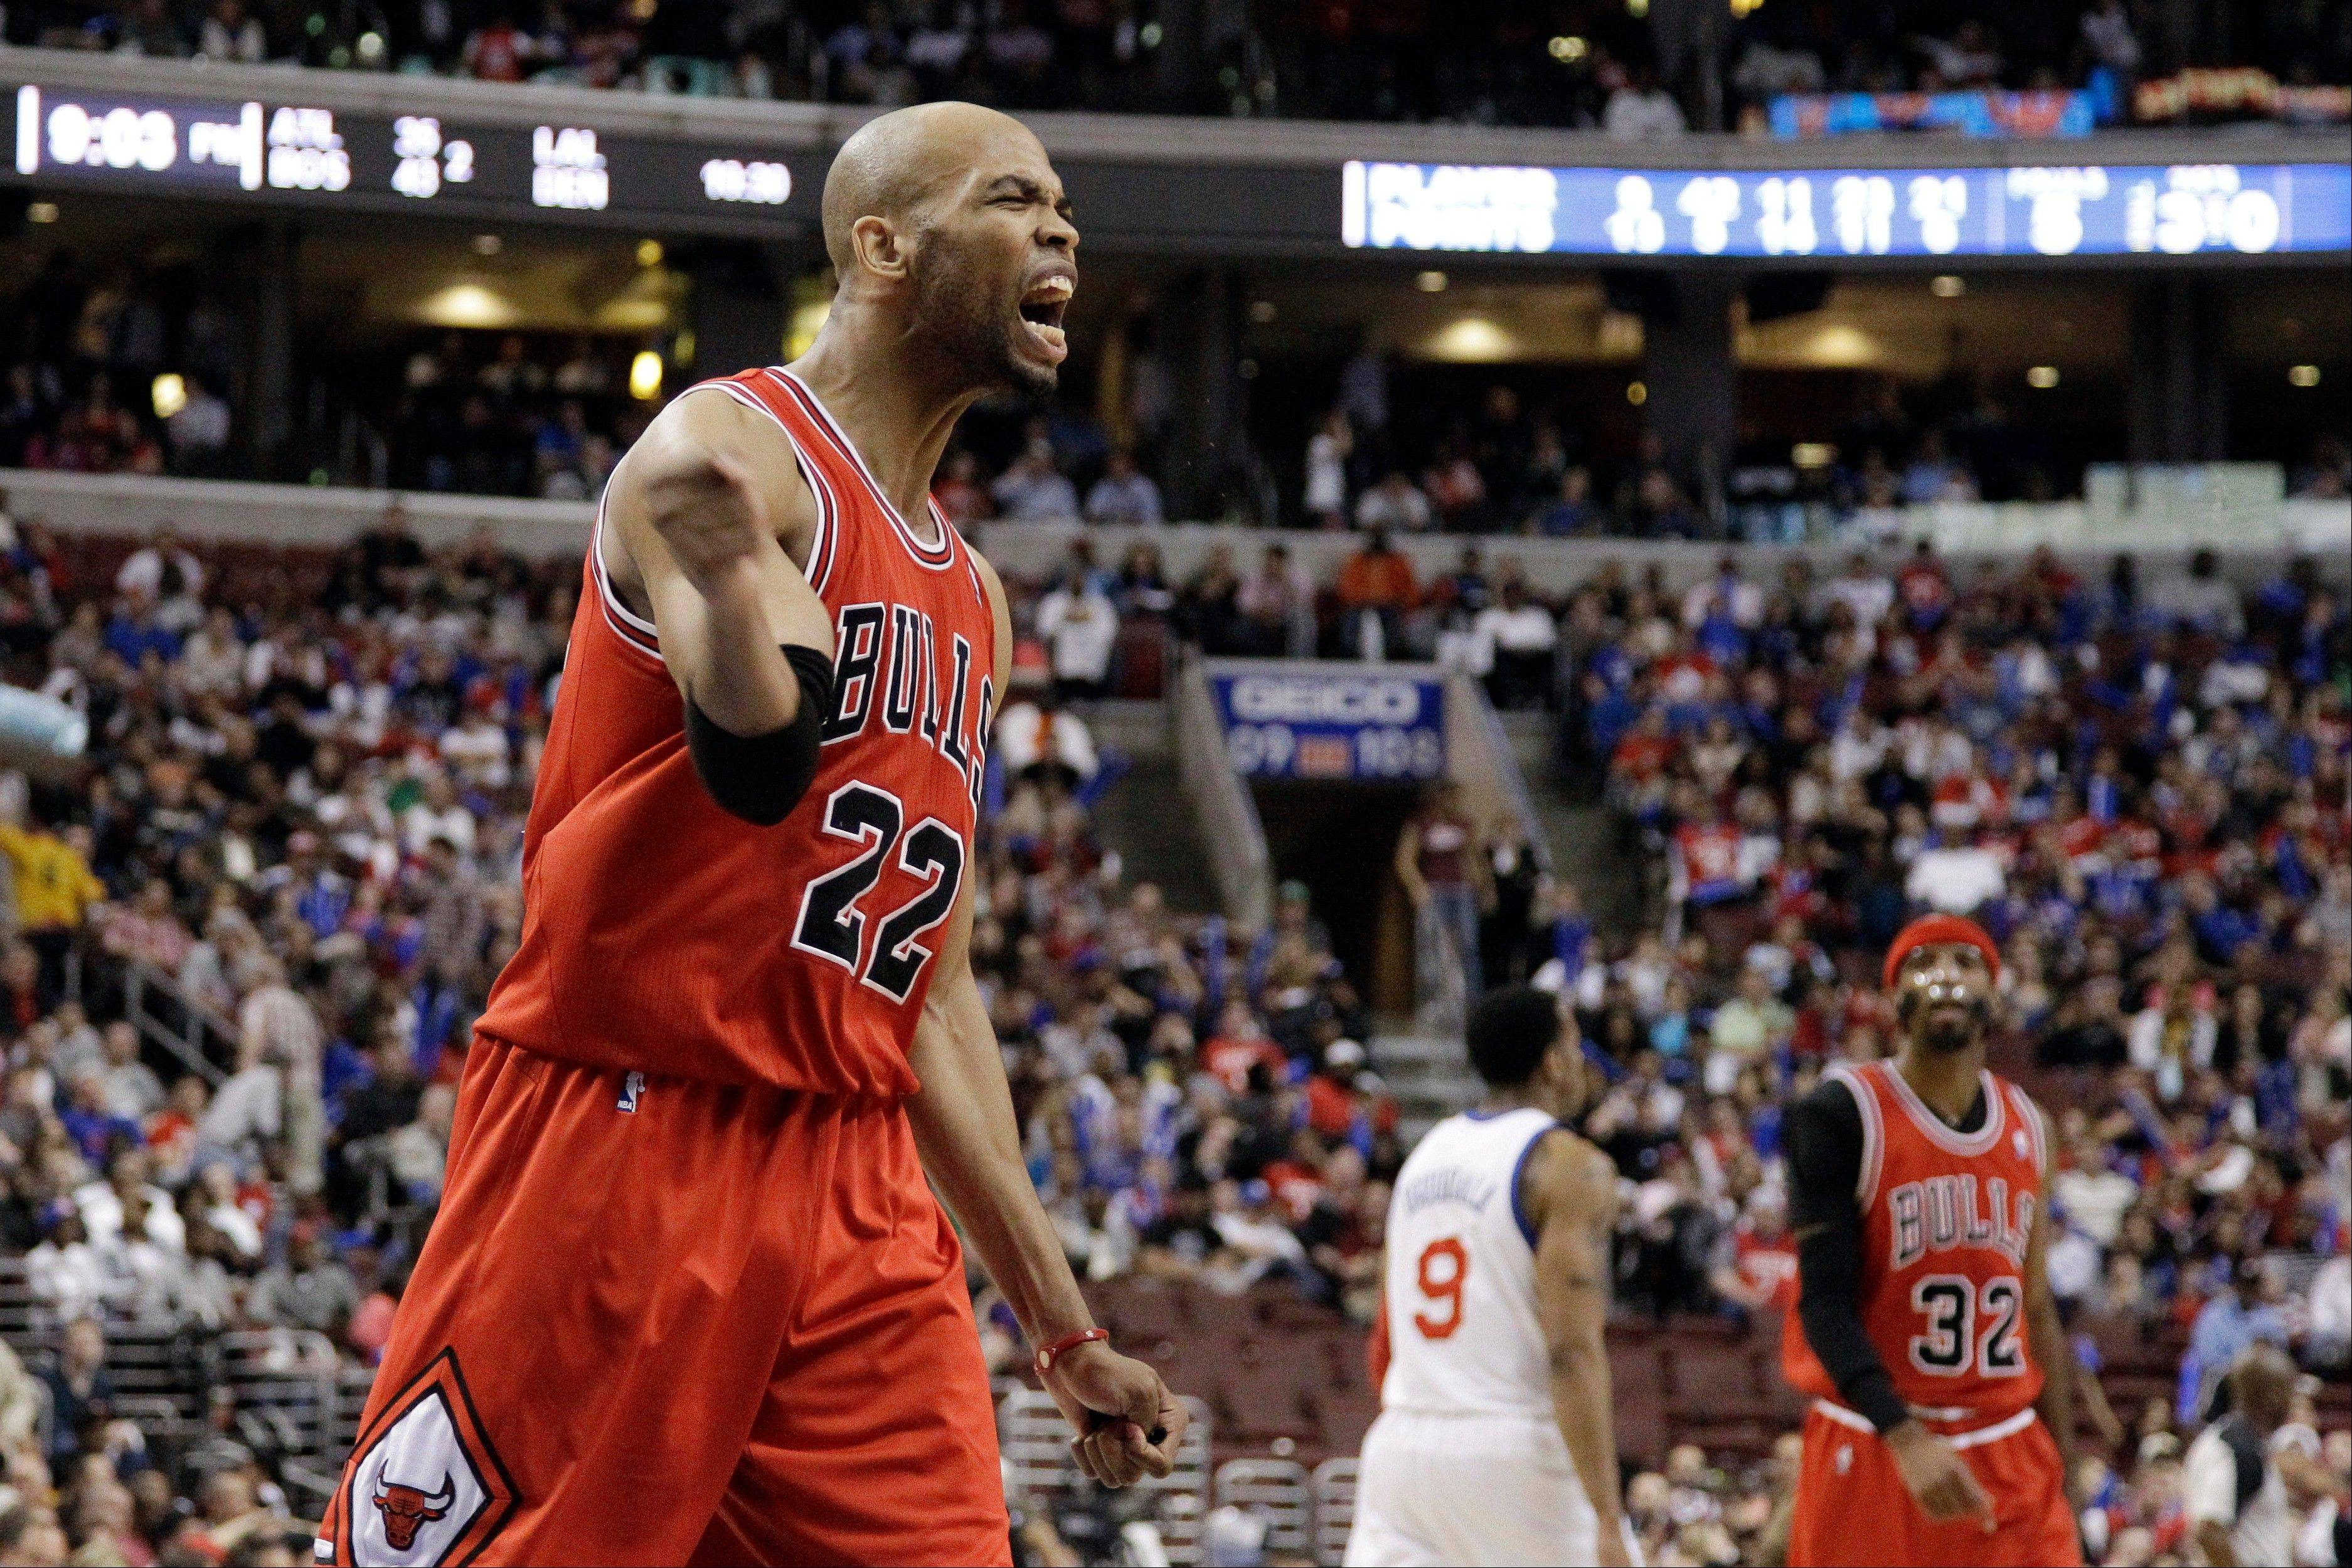 If the Taj Gibson and the Bulls don't agree to a contract extension by Oct. 31, the 6-foot-9 power forward will become a restricted free agent next summer.